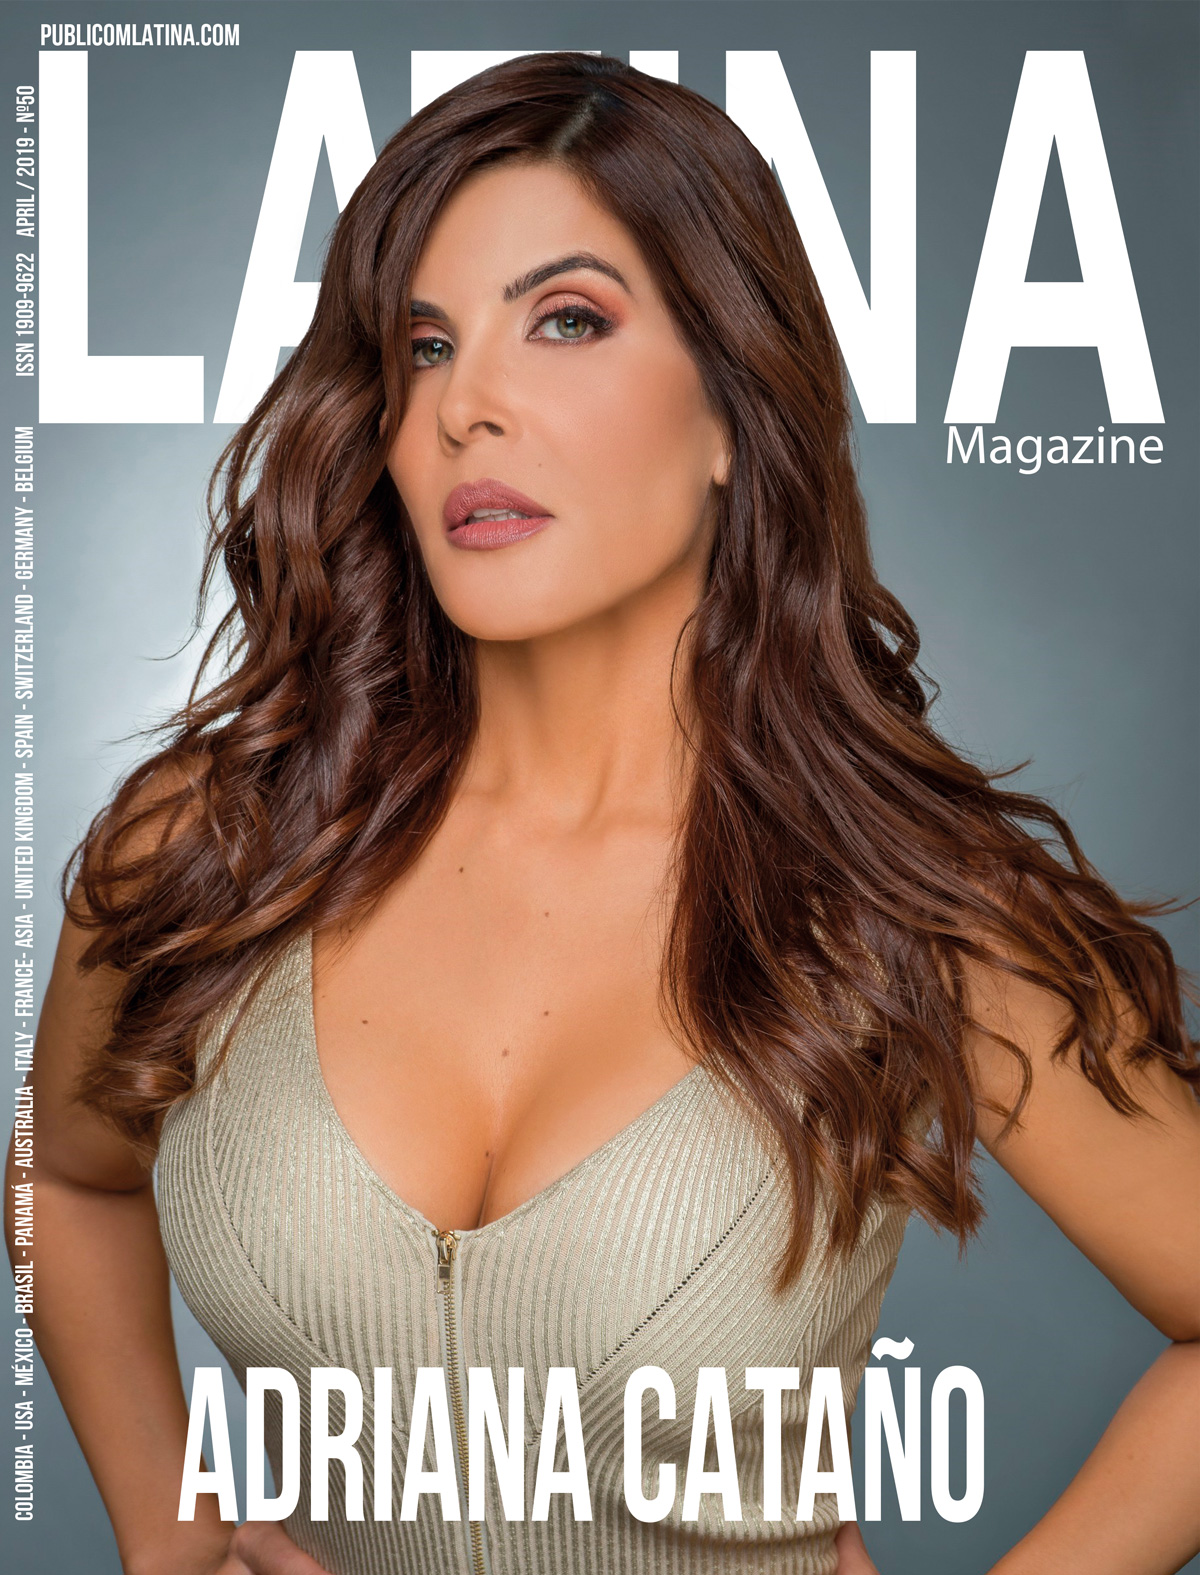 adriana_catano_cover_